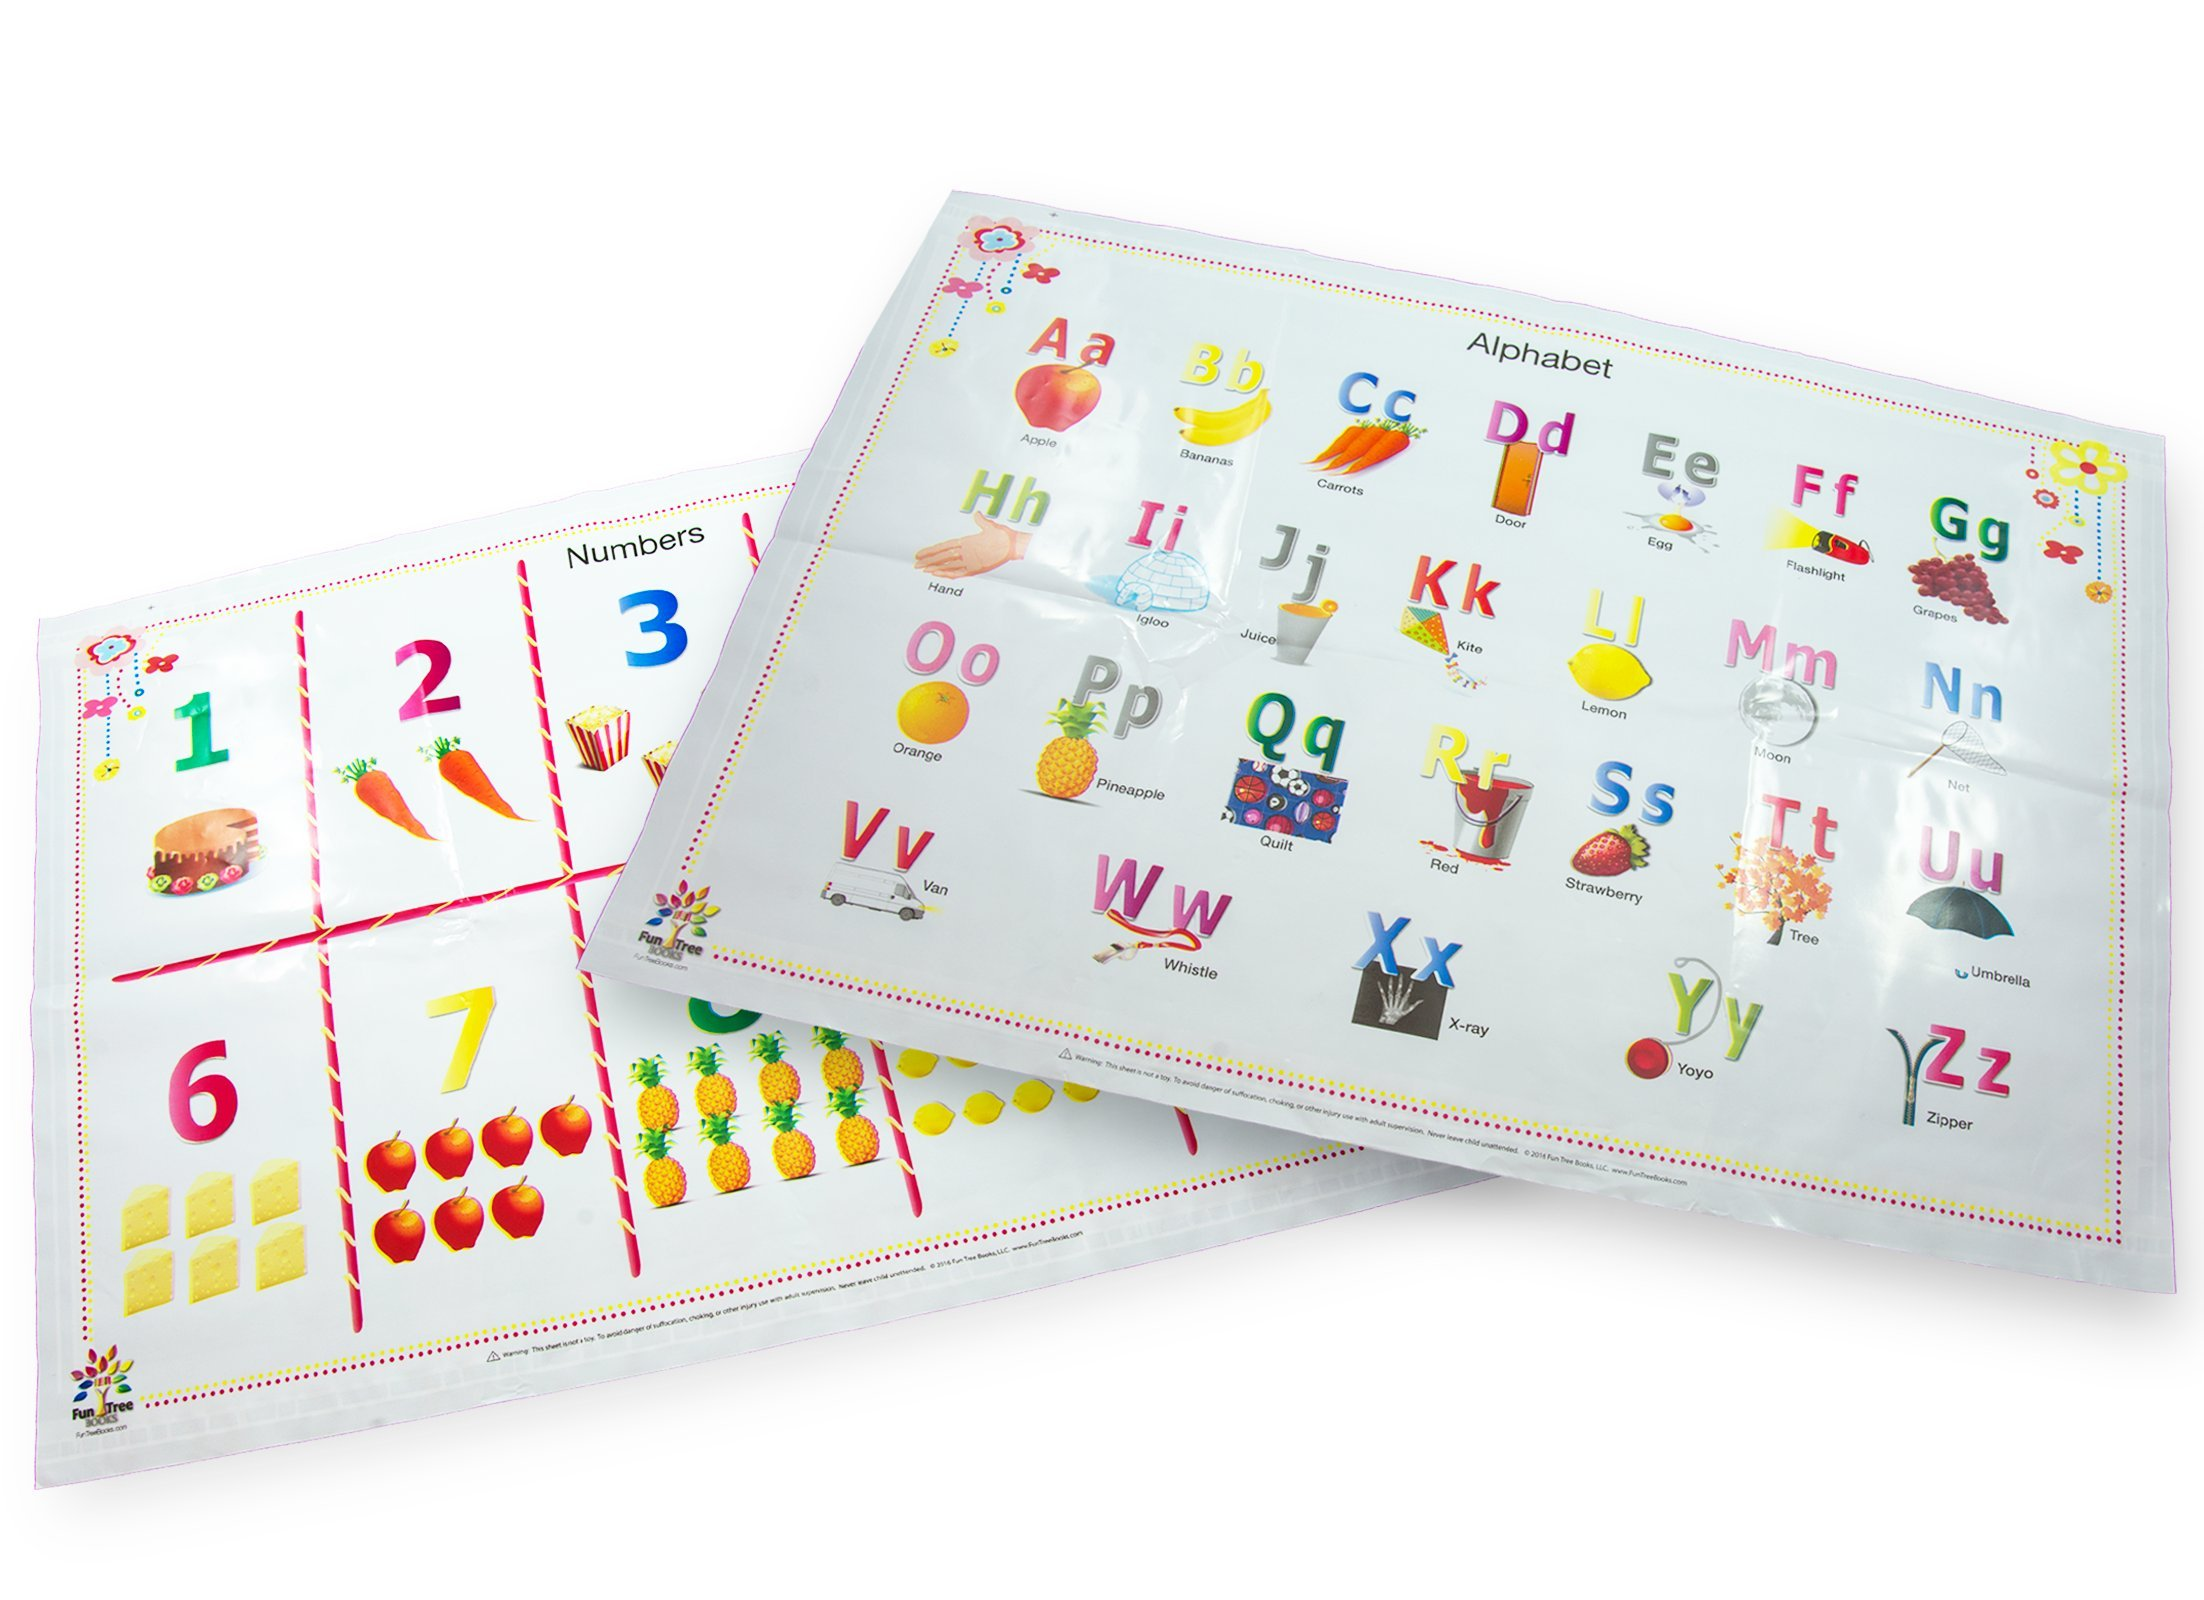 Alphabet & Numbers Table Top Disposable Placemats for Baby and Toddlers 60-Count (2 Designs) BPA Free